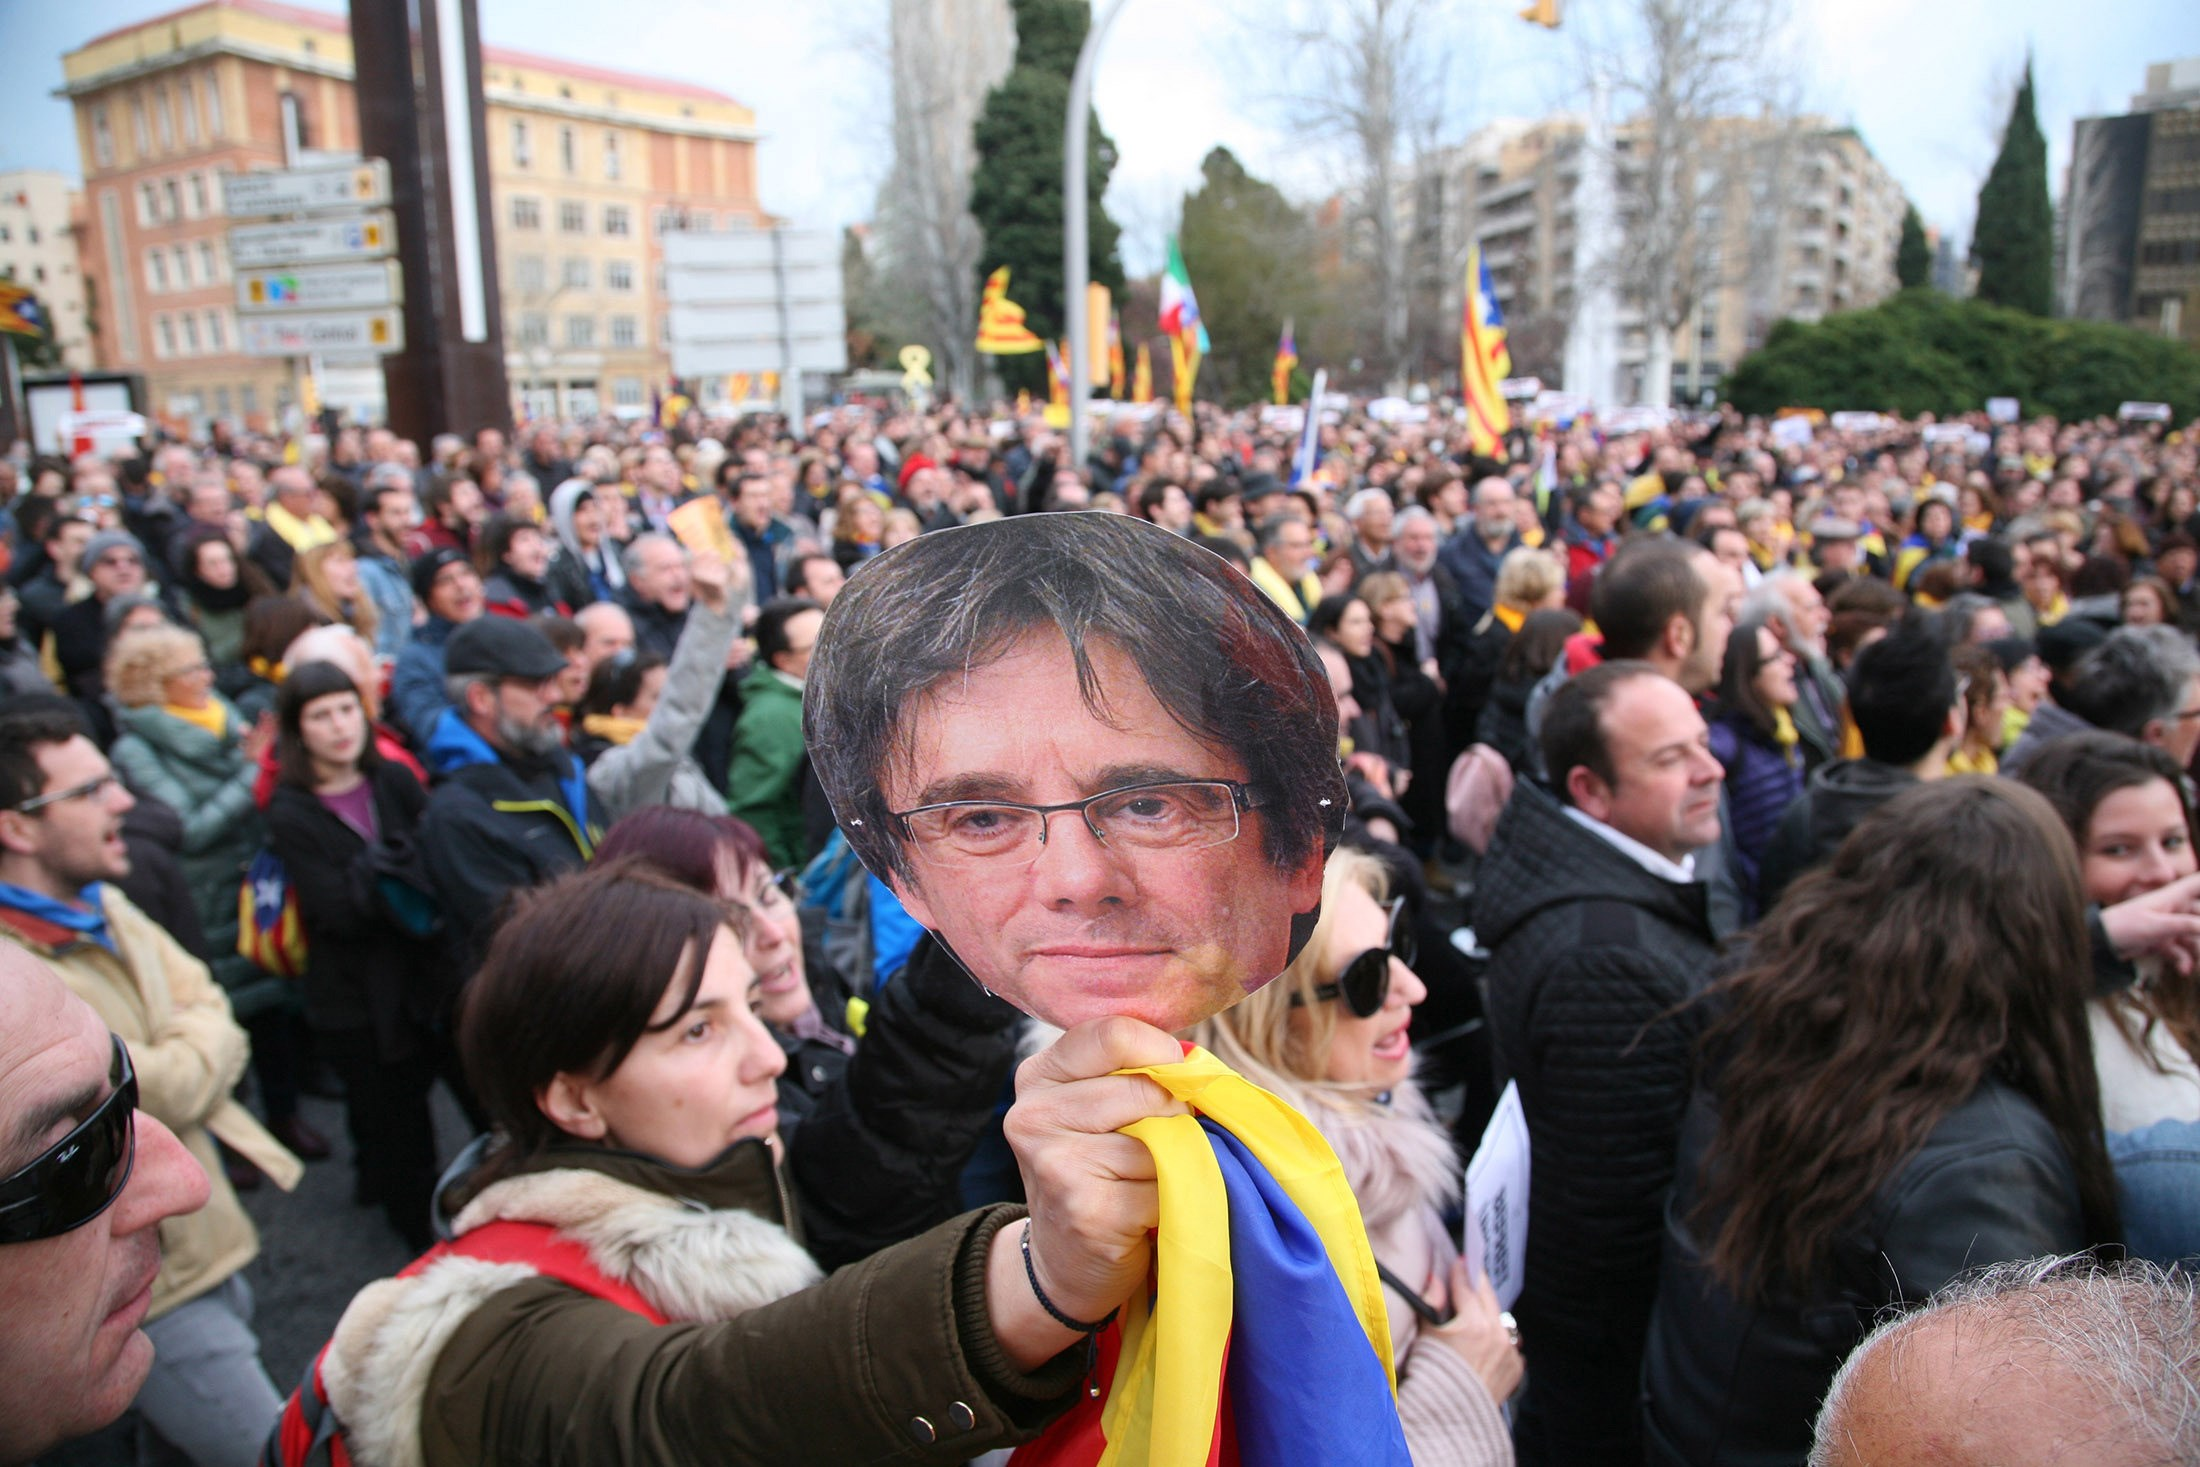 Mord In Bester Gesellschaft In Teufels Küche Stream Arrest Of Carles Puigdemont Closes Another Chapter In Catalonia S